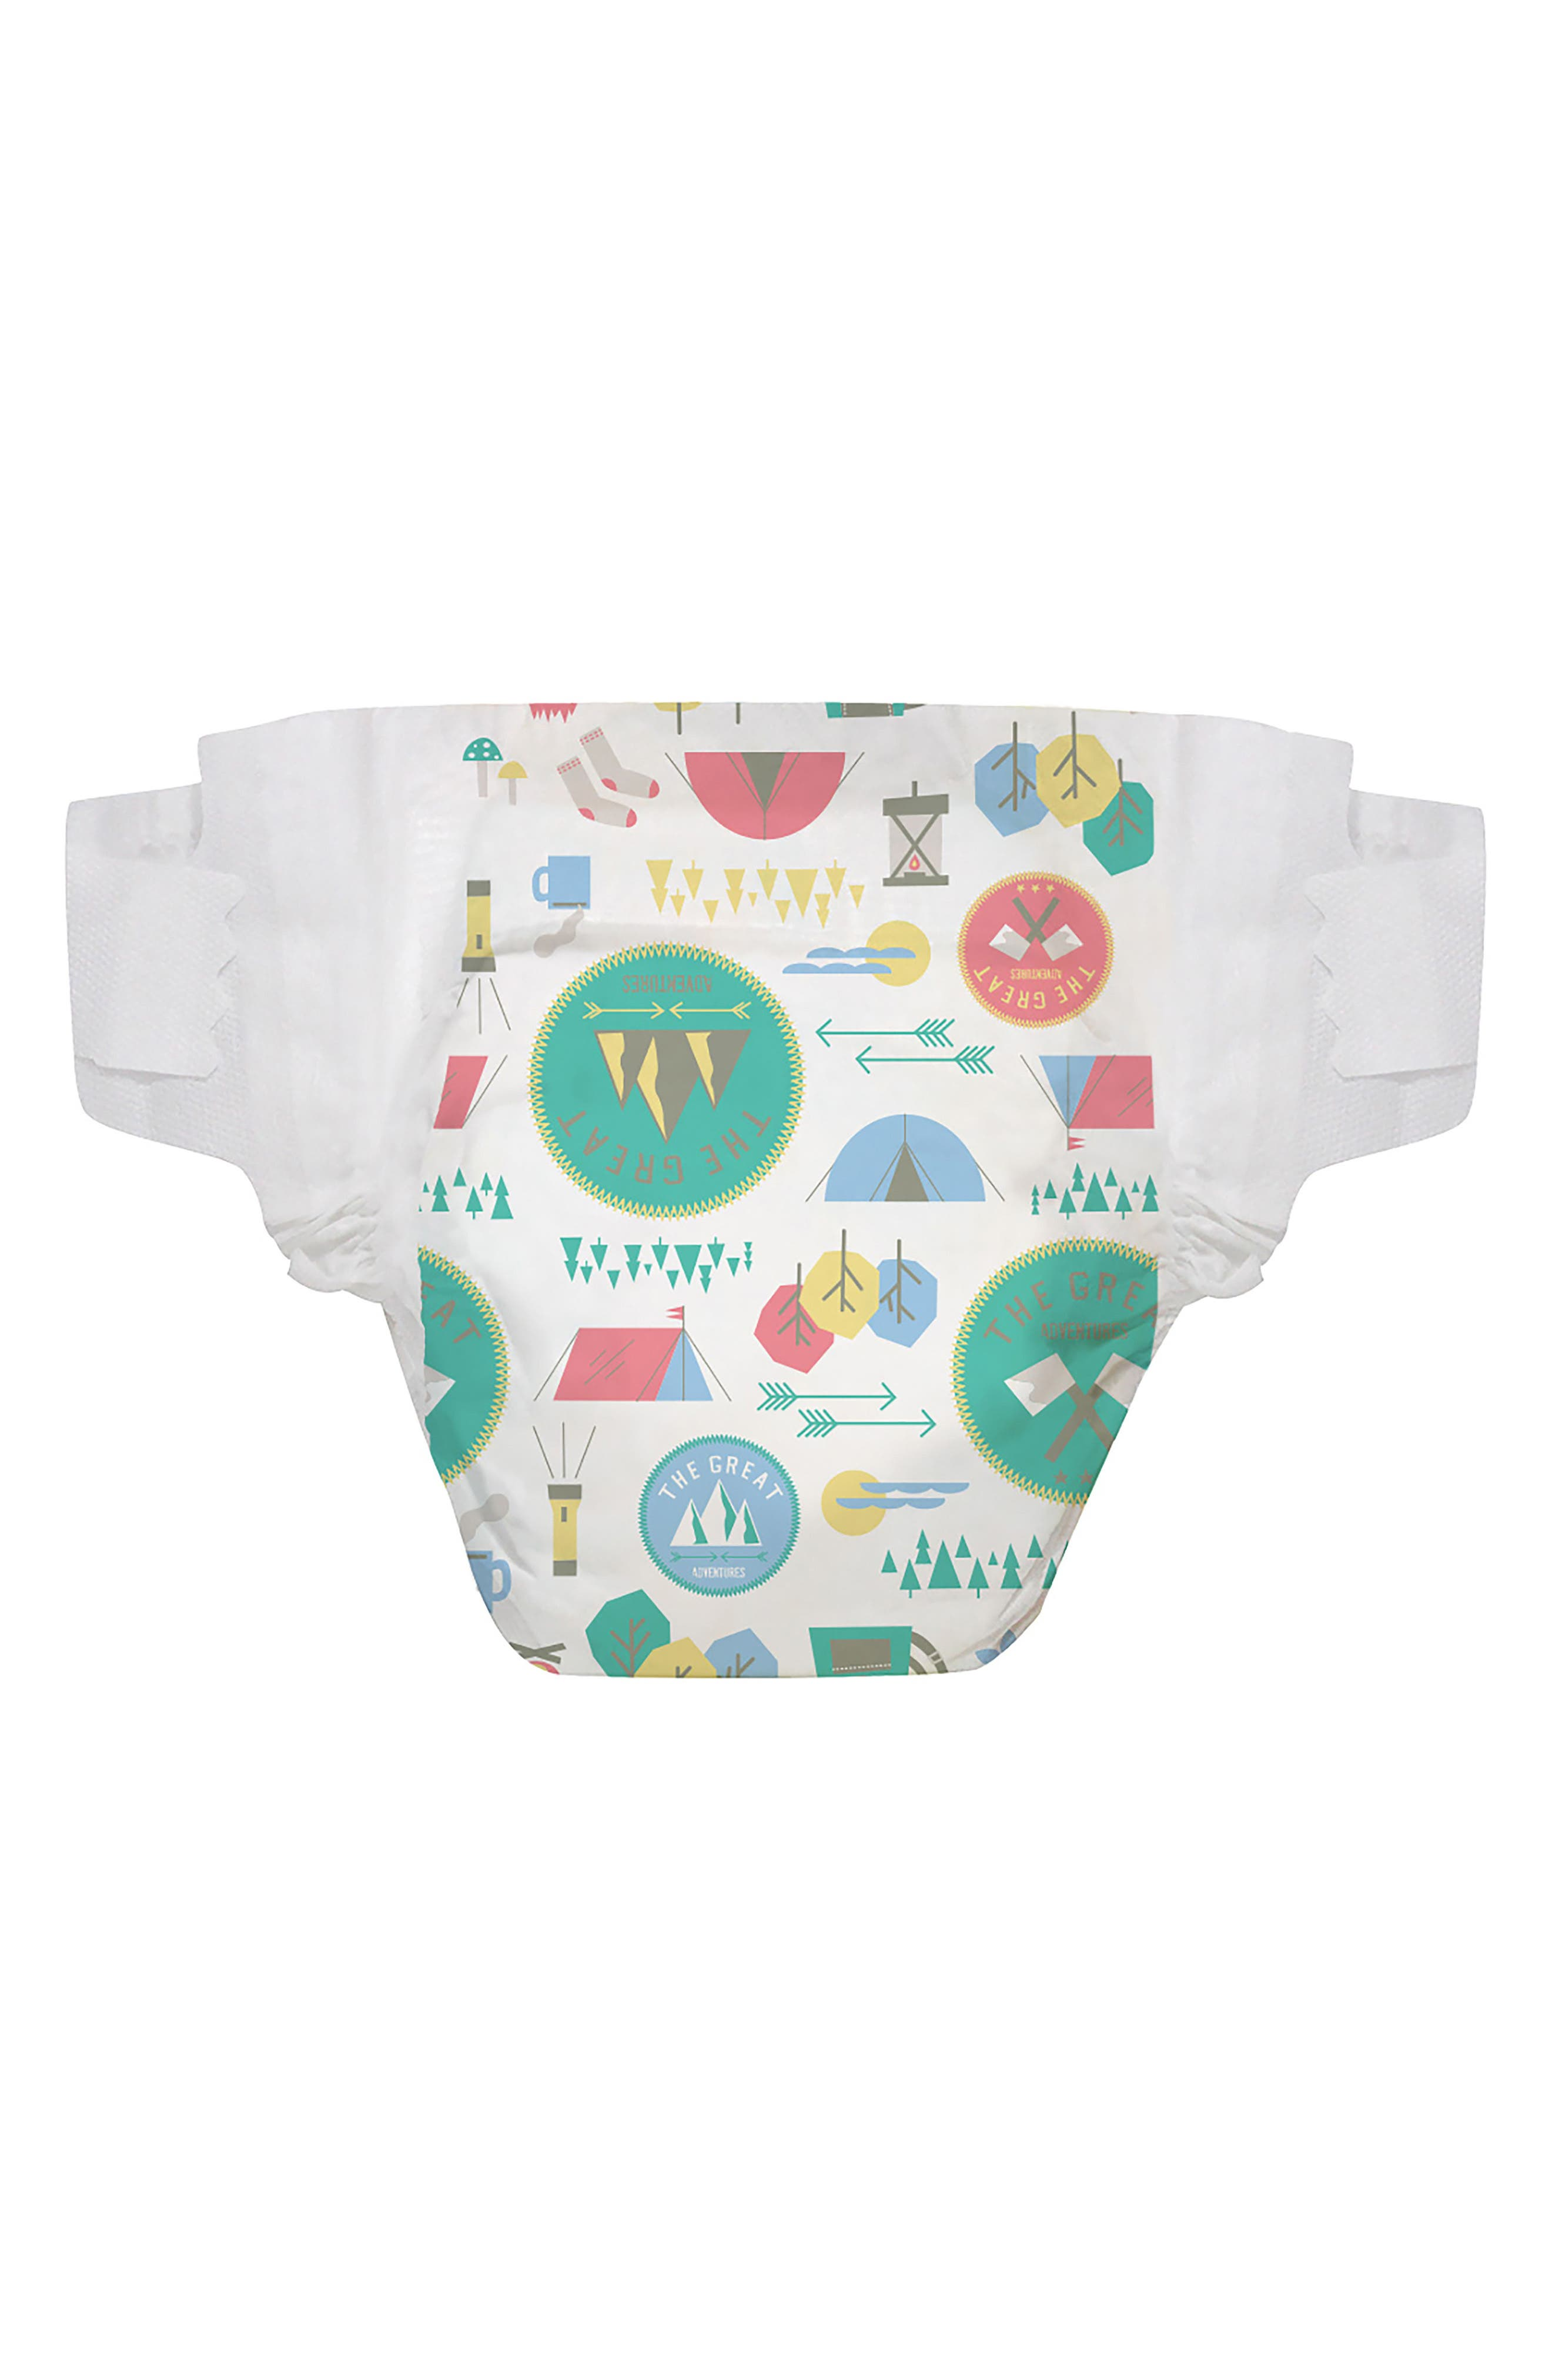 x THE GREAT. The Great Adventure Diapers,                         Main,                         color, The Great Adventure